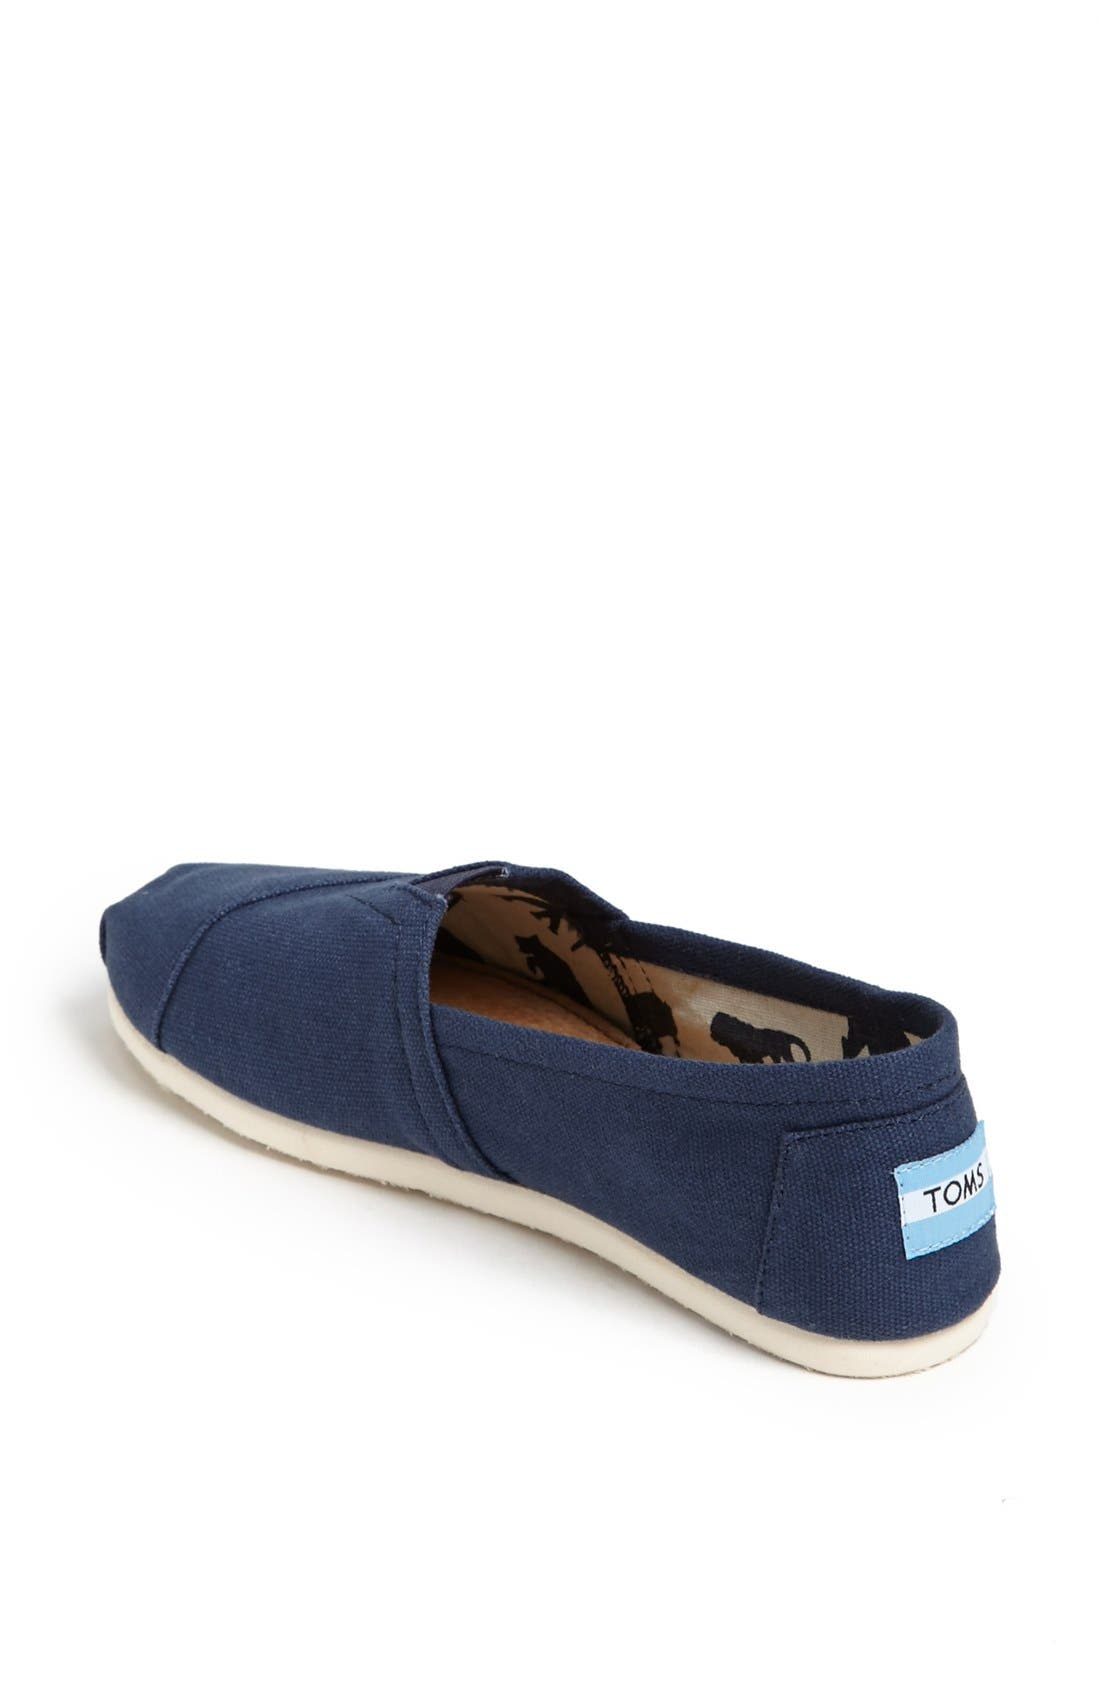 Alternate Image 2  - TOMS 'Classic' Canvas Slip-On (Women)